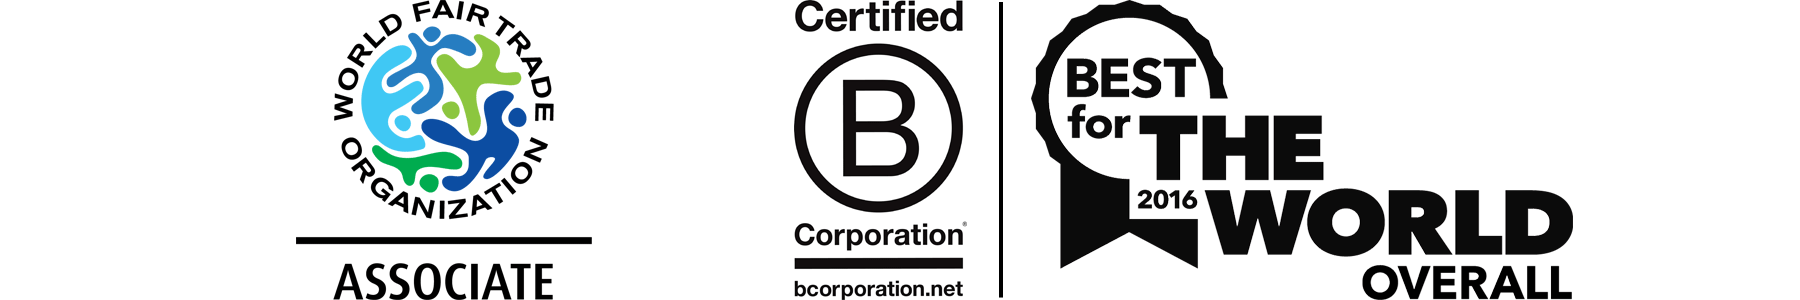 WFTO World Fair Trade Organization and B Corp certifications for Prosperity Candle making handcrated soy blend candles